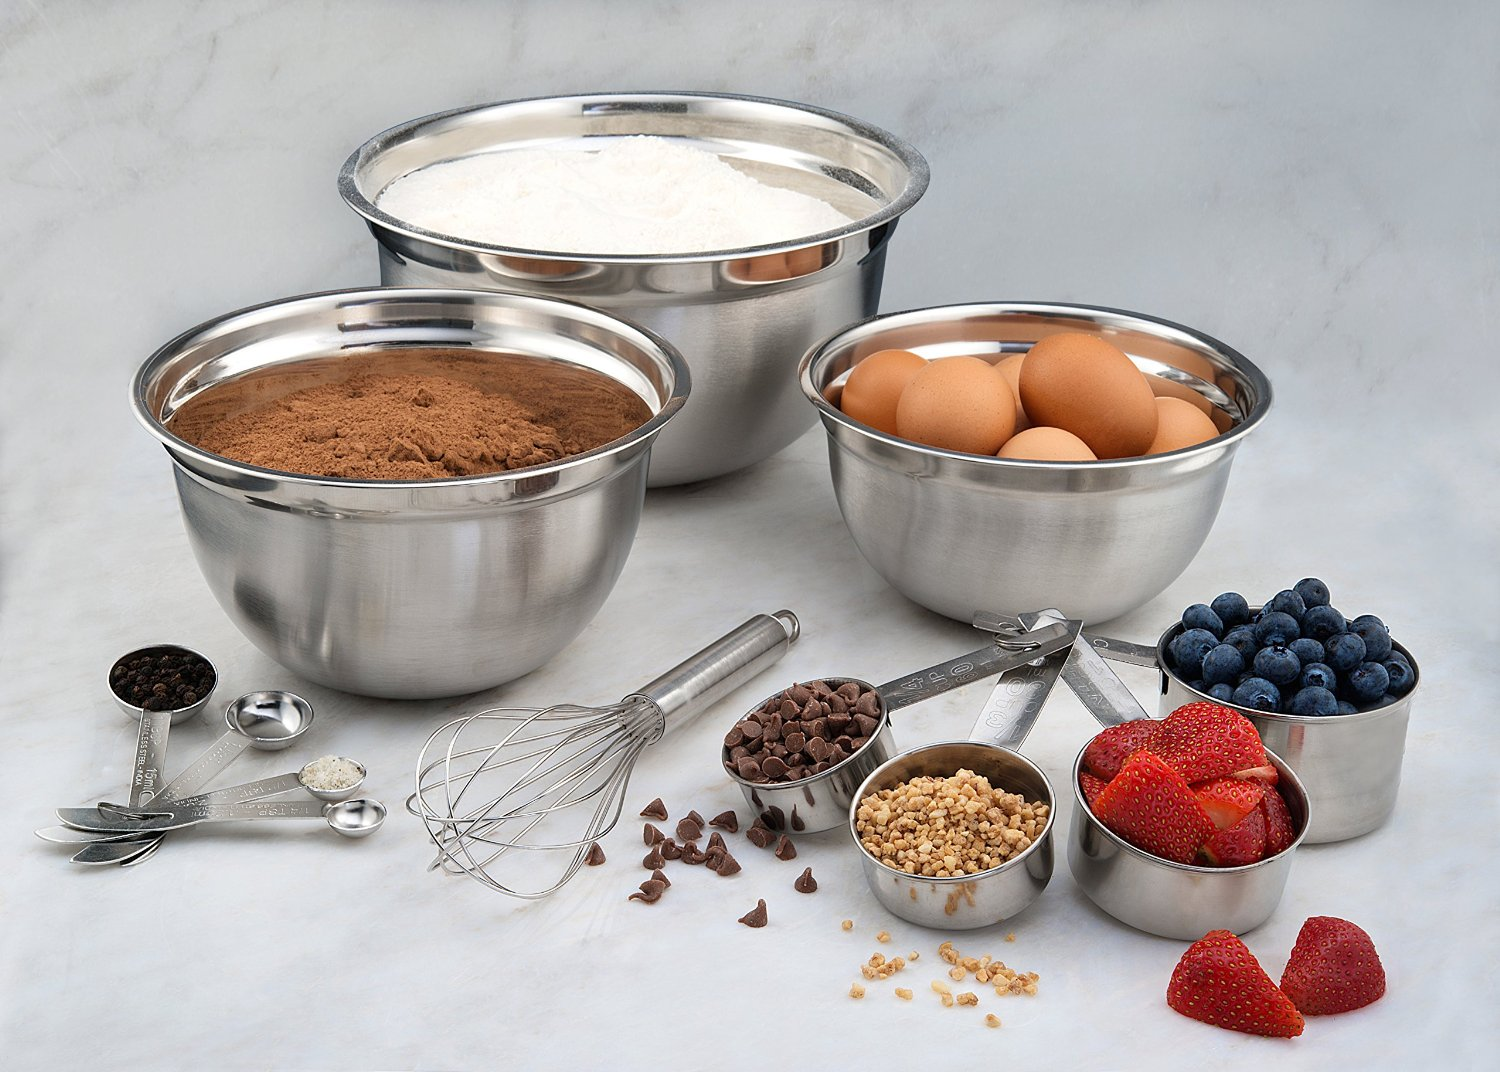 12 Piece Stainless Steel Mix & Measure Combo Set, Measuring Cups, Measuring Spoons and Mixing Bowls (only $16.99)